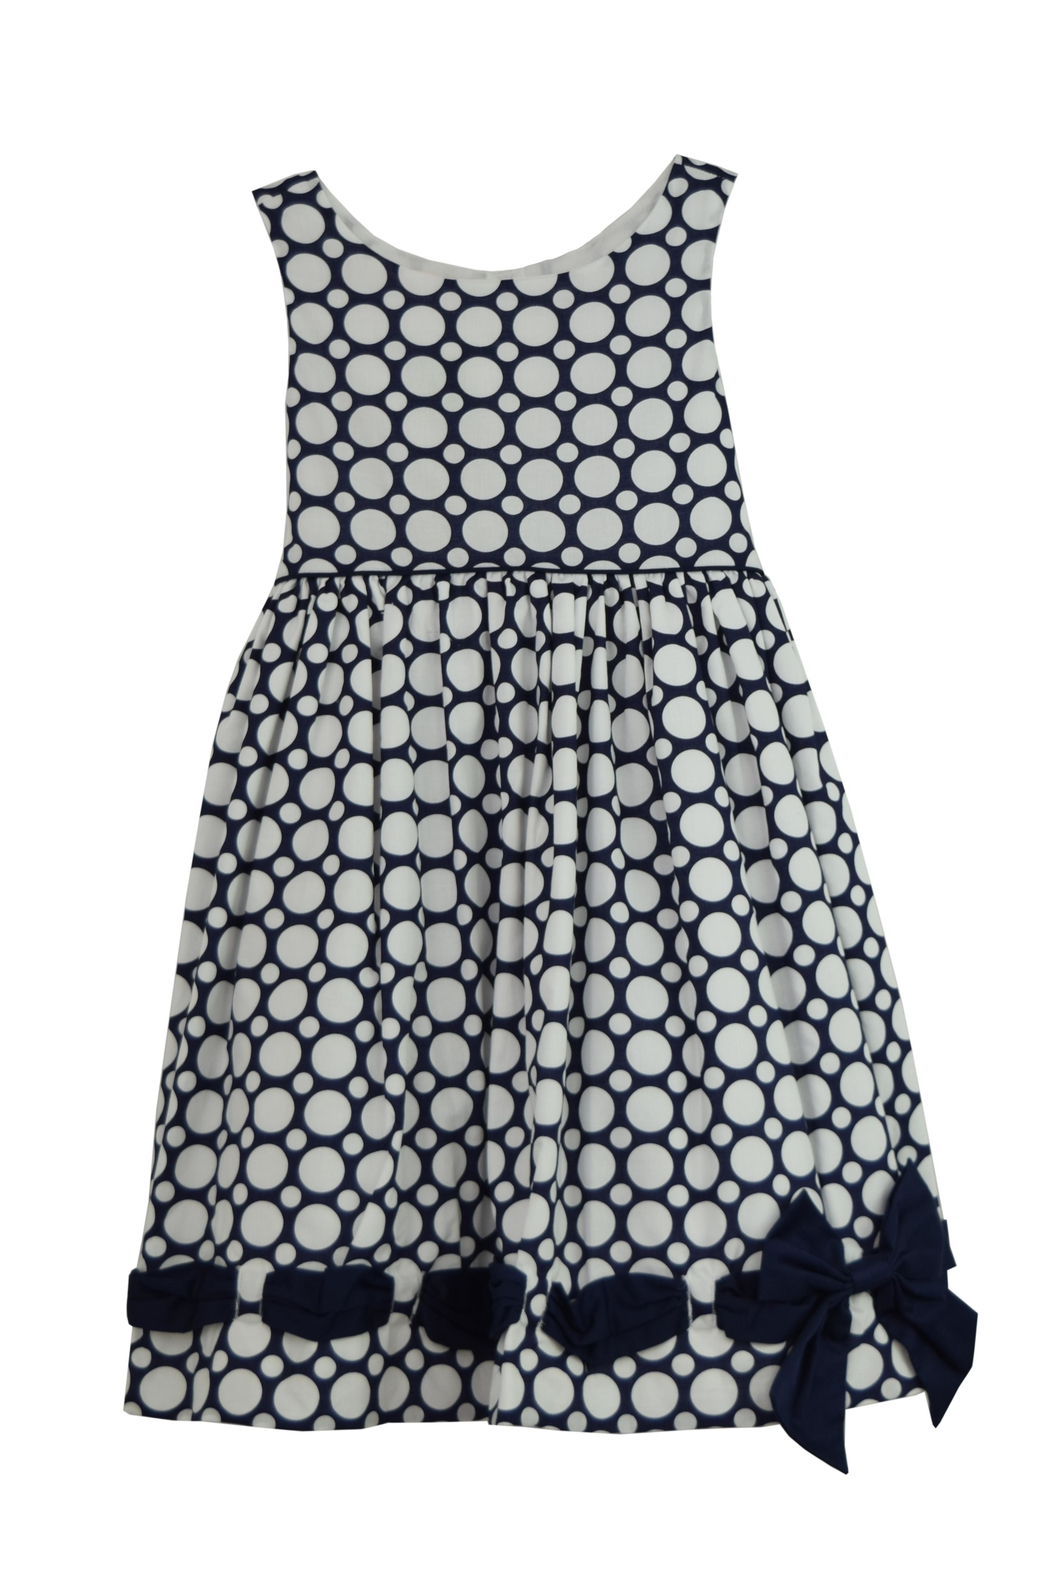 Biscotti Blue Polkadot Dress - Main Image